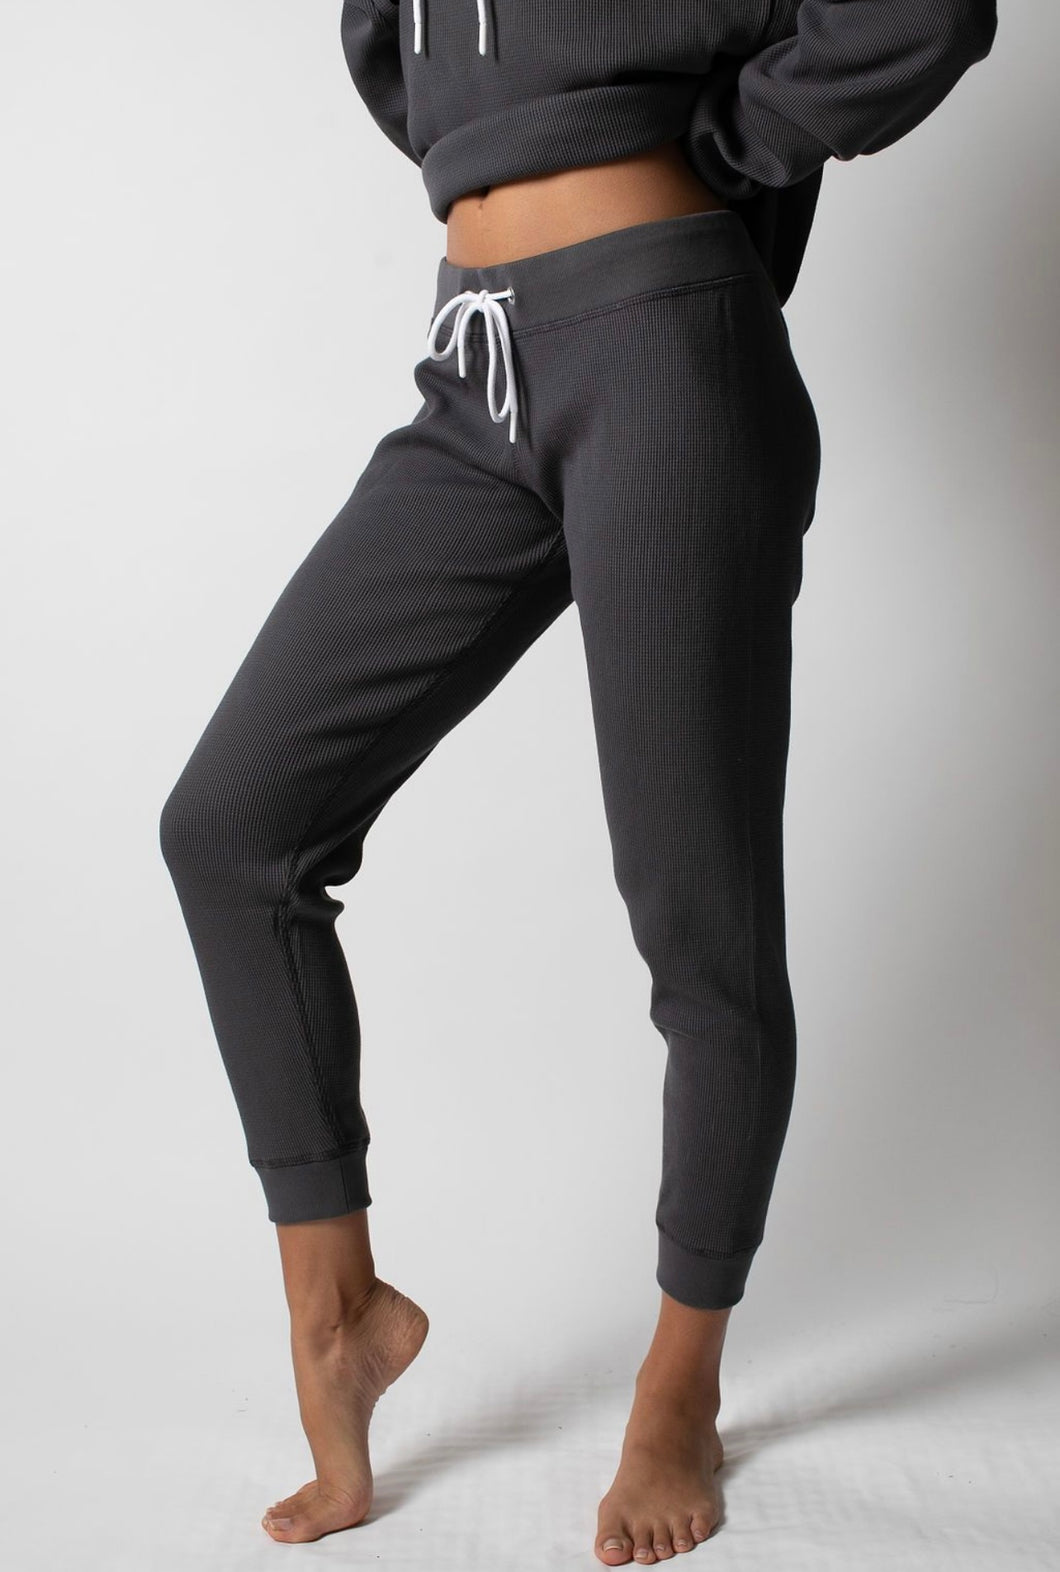 Thermal Jogger | Leallo